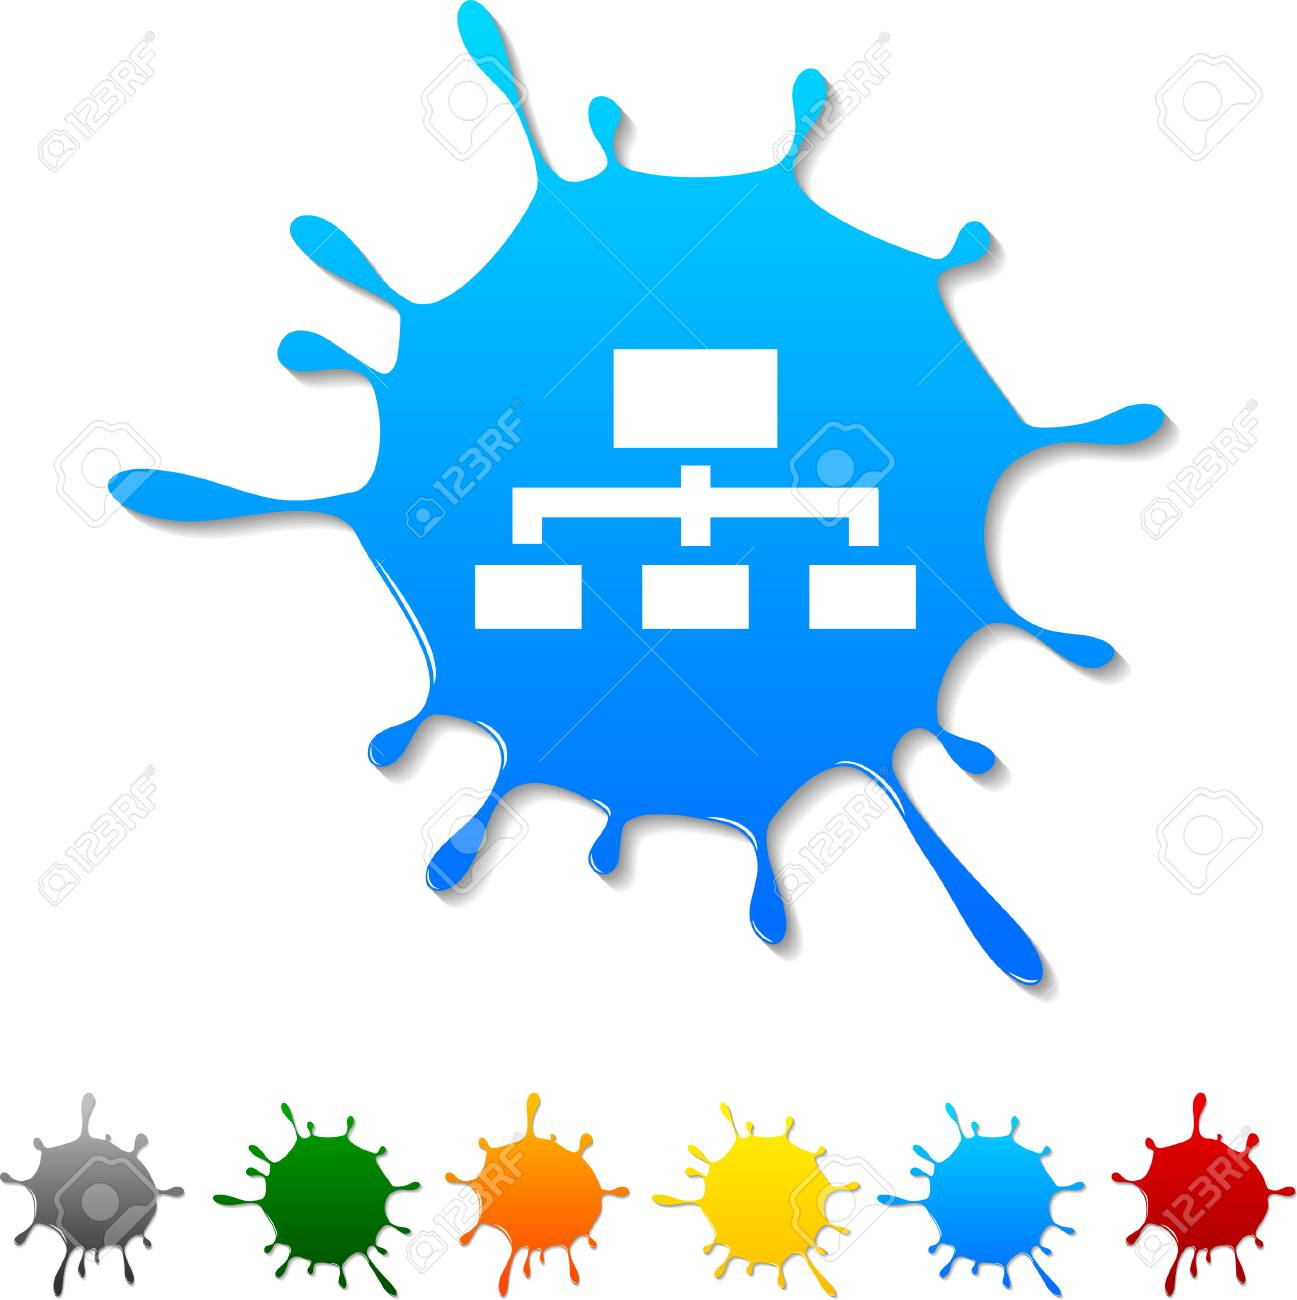 Network  blot icon. Vector illustration. Stock Vector - 5719394